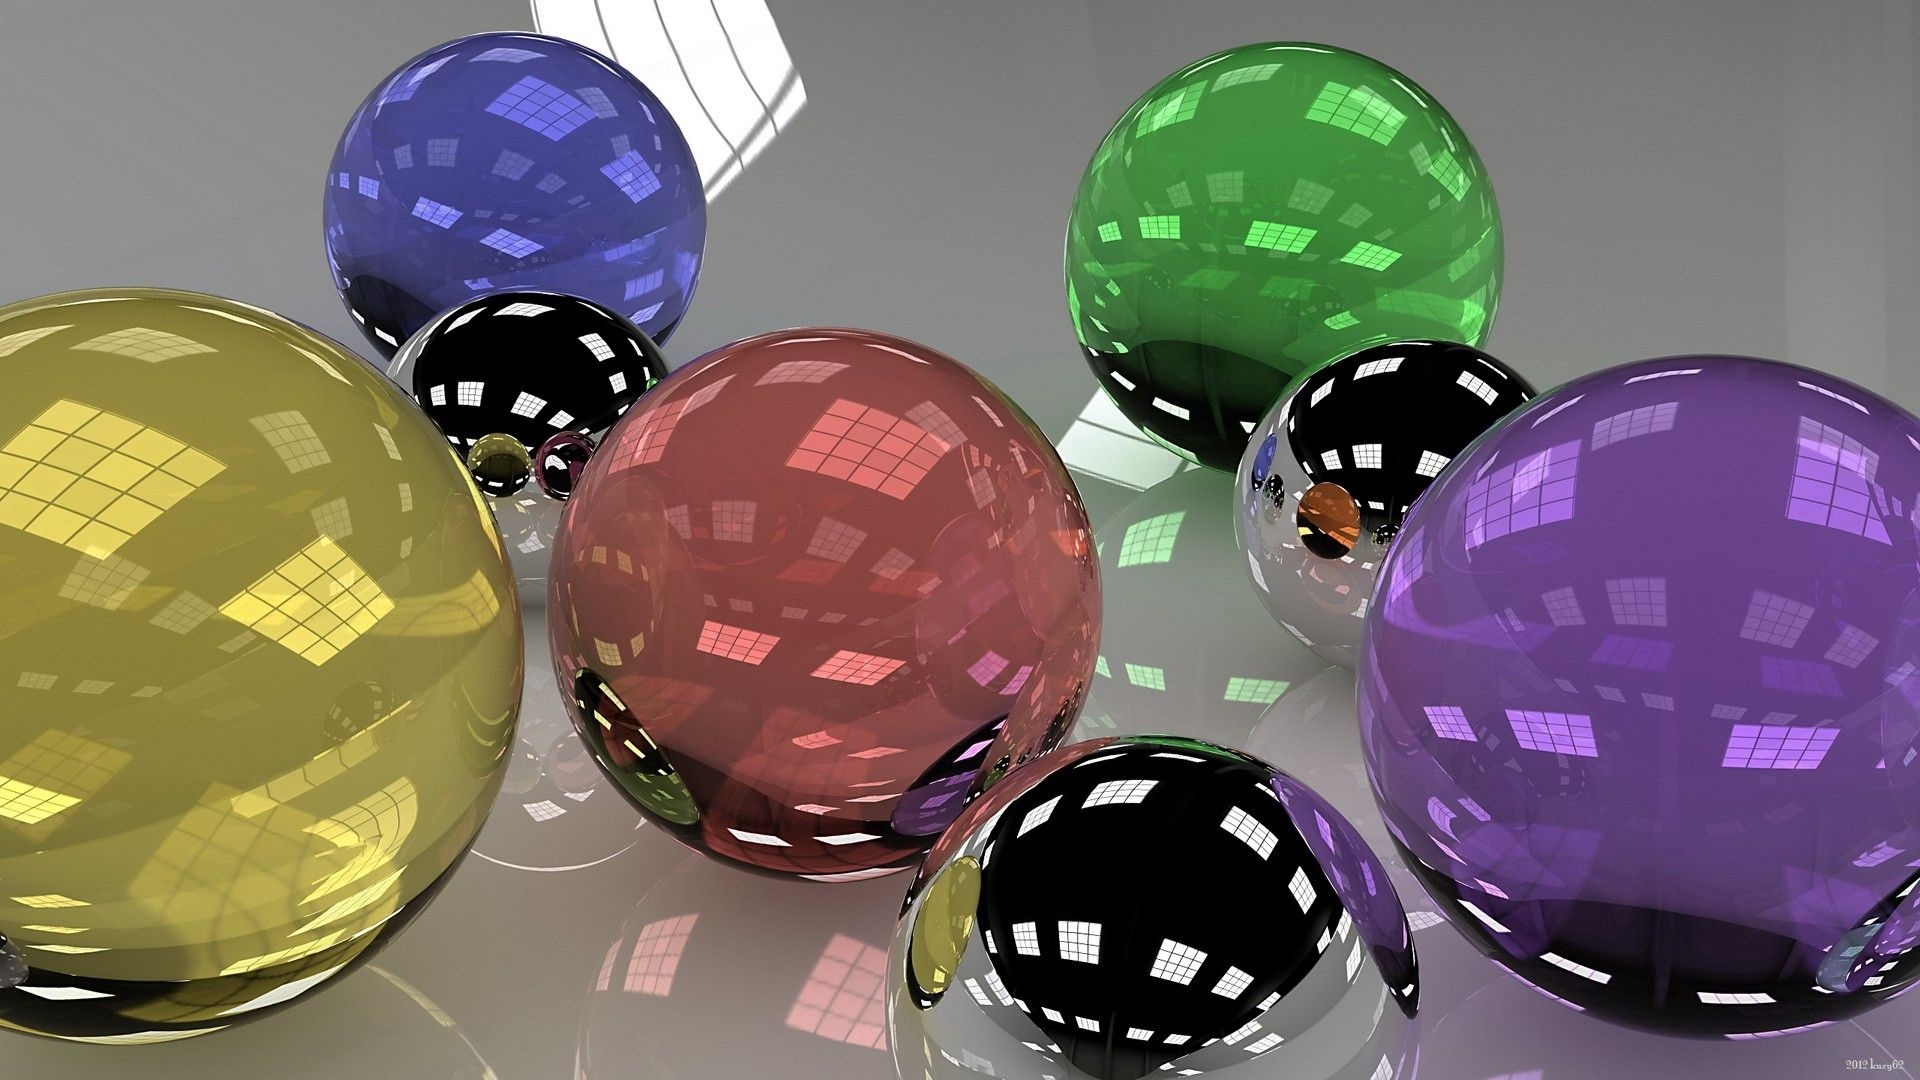 Ball Glass wallpaper for desktop